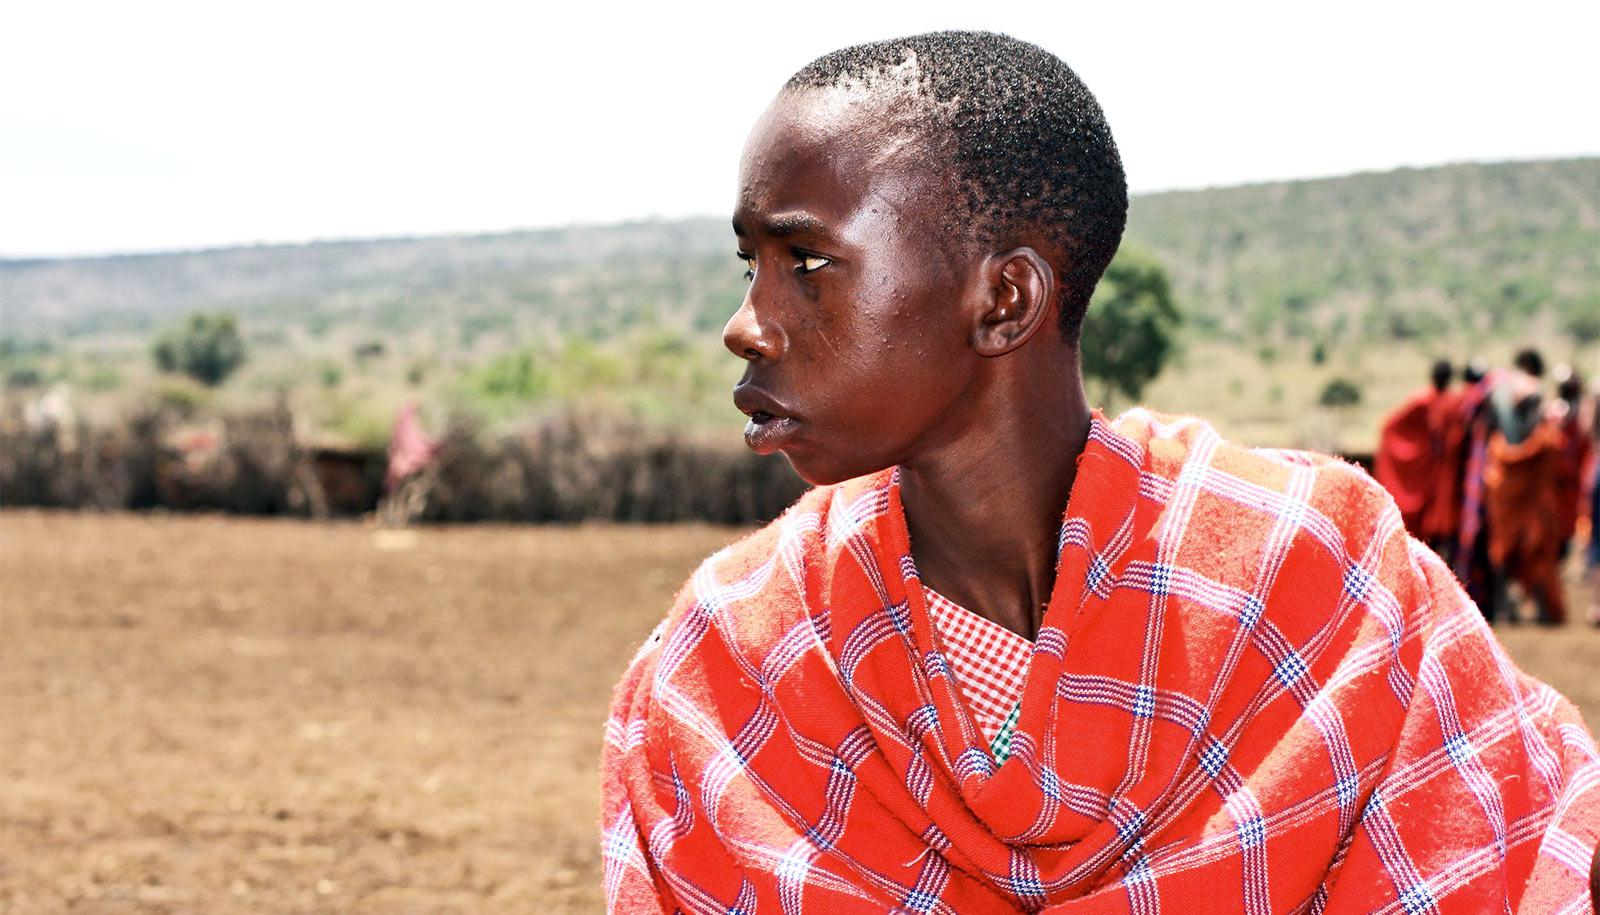 A young man from the Masai people in Kenye wears a bright orange wrap